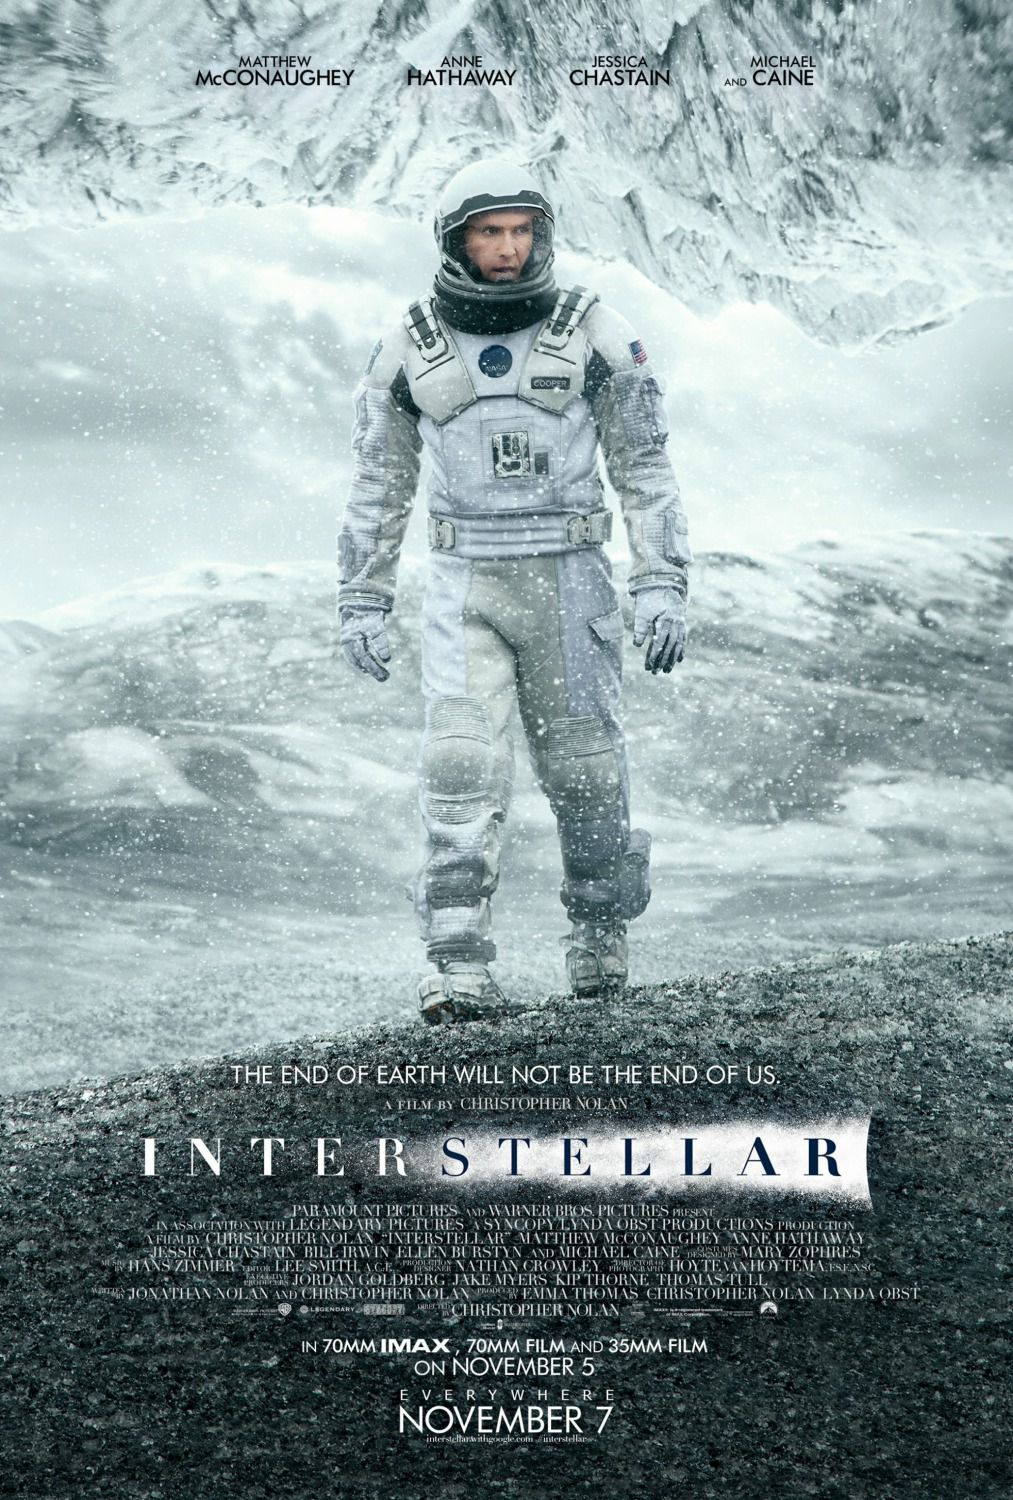 Interstellar - poster - Matthew Mcconaughey